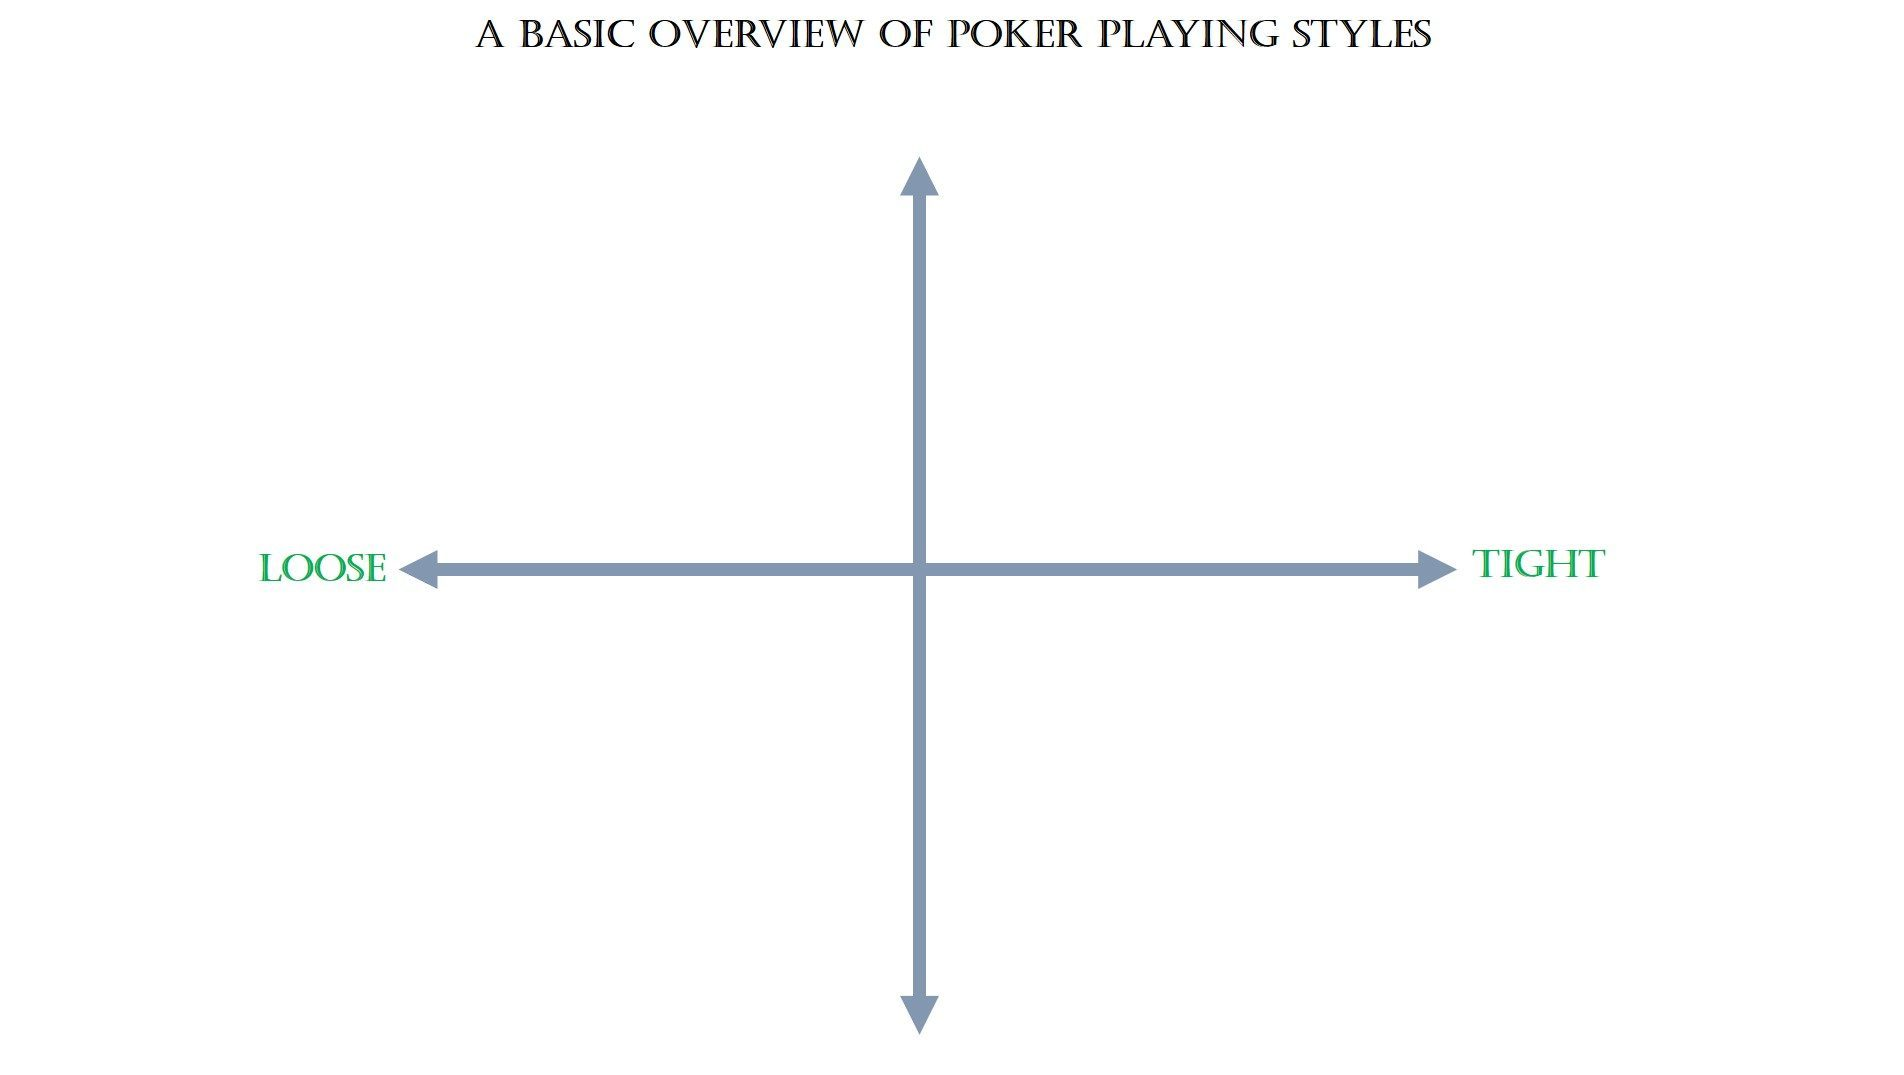 A Basic Overview Of Poker Playing Styles